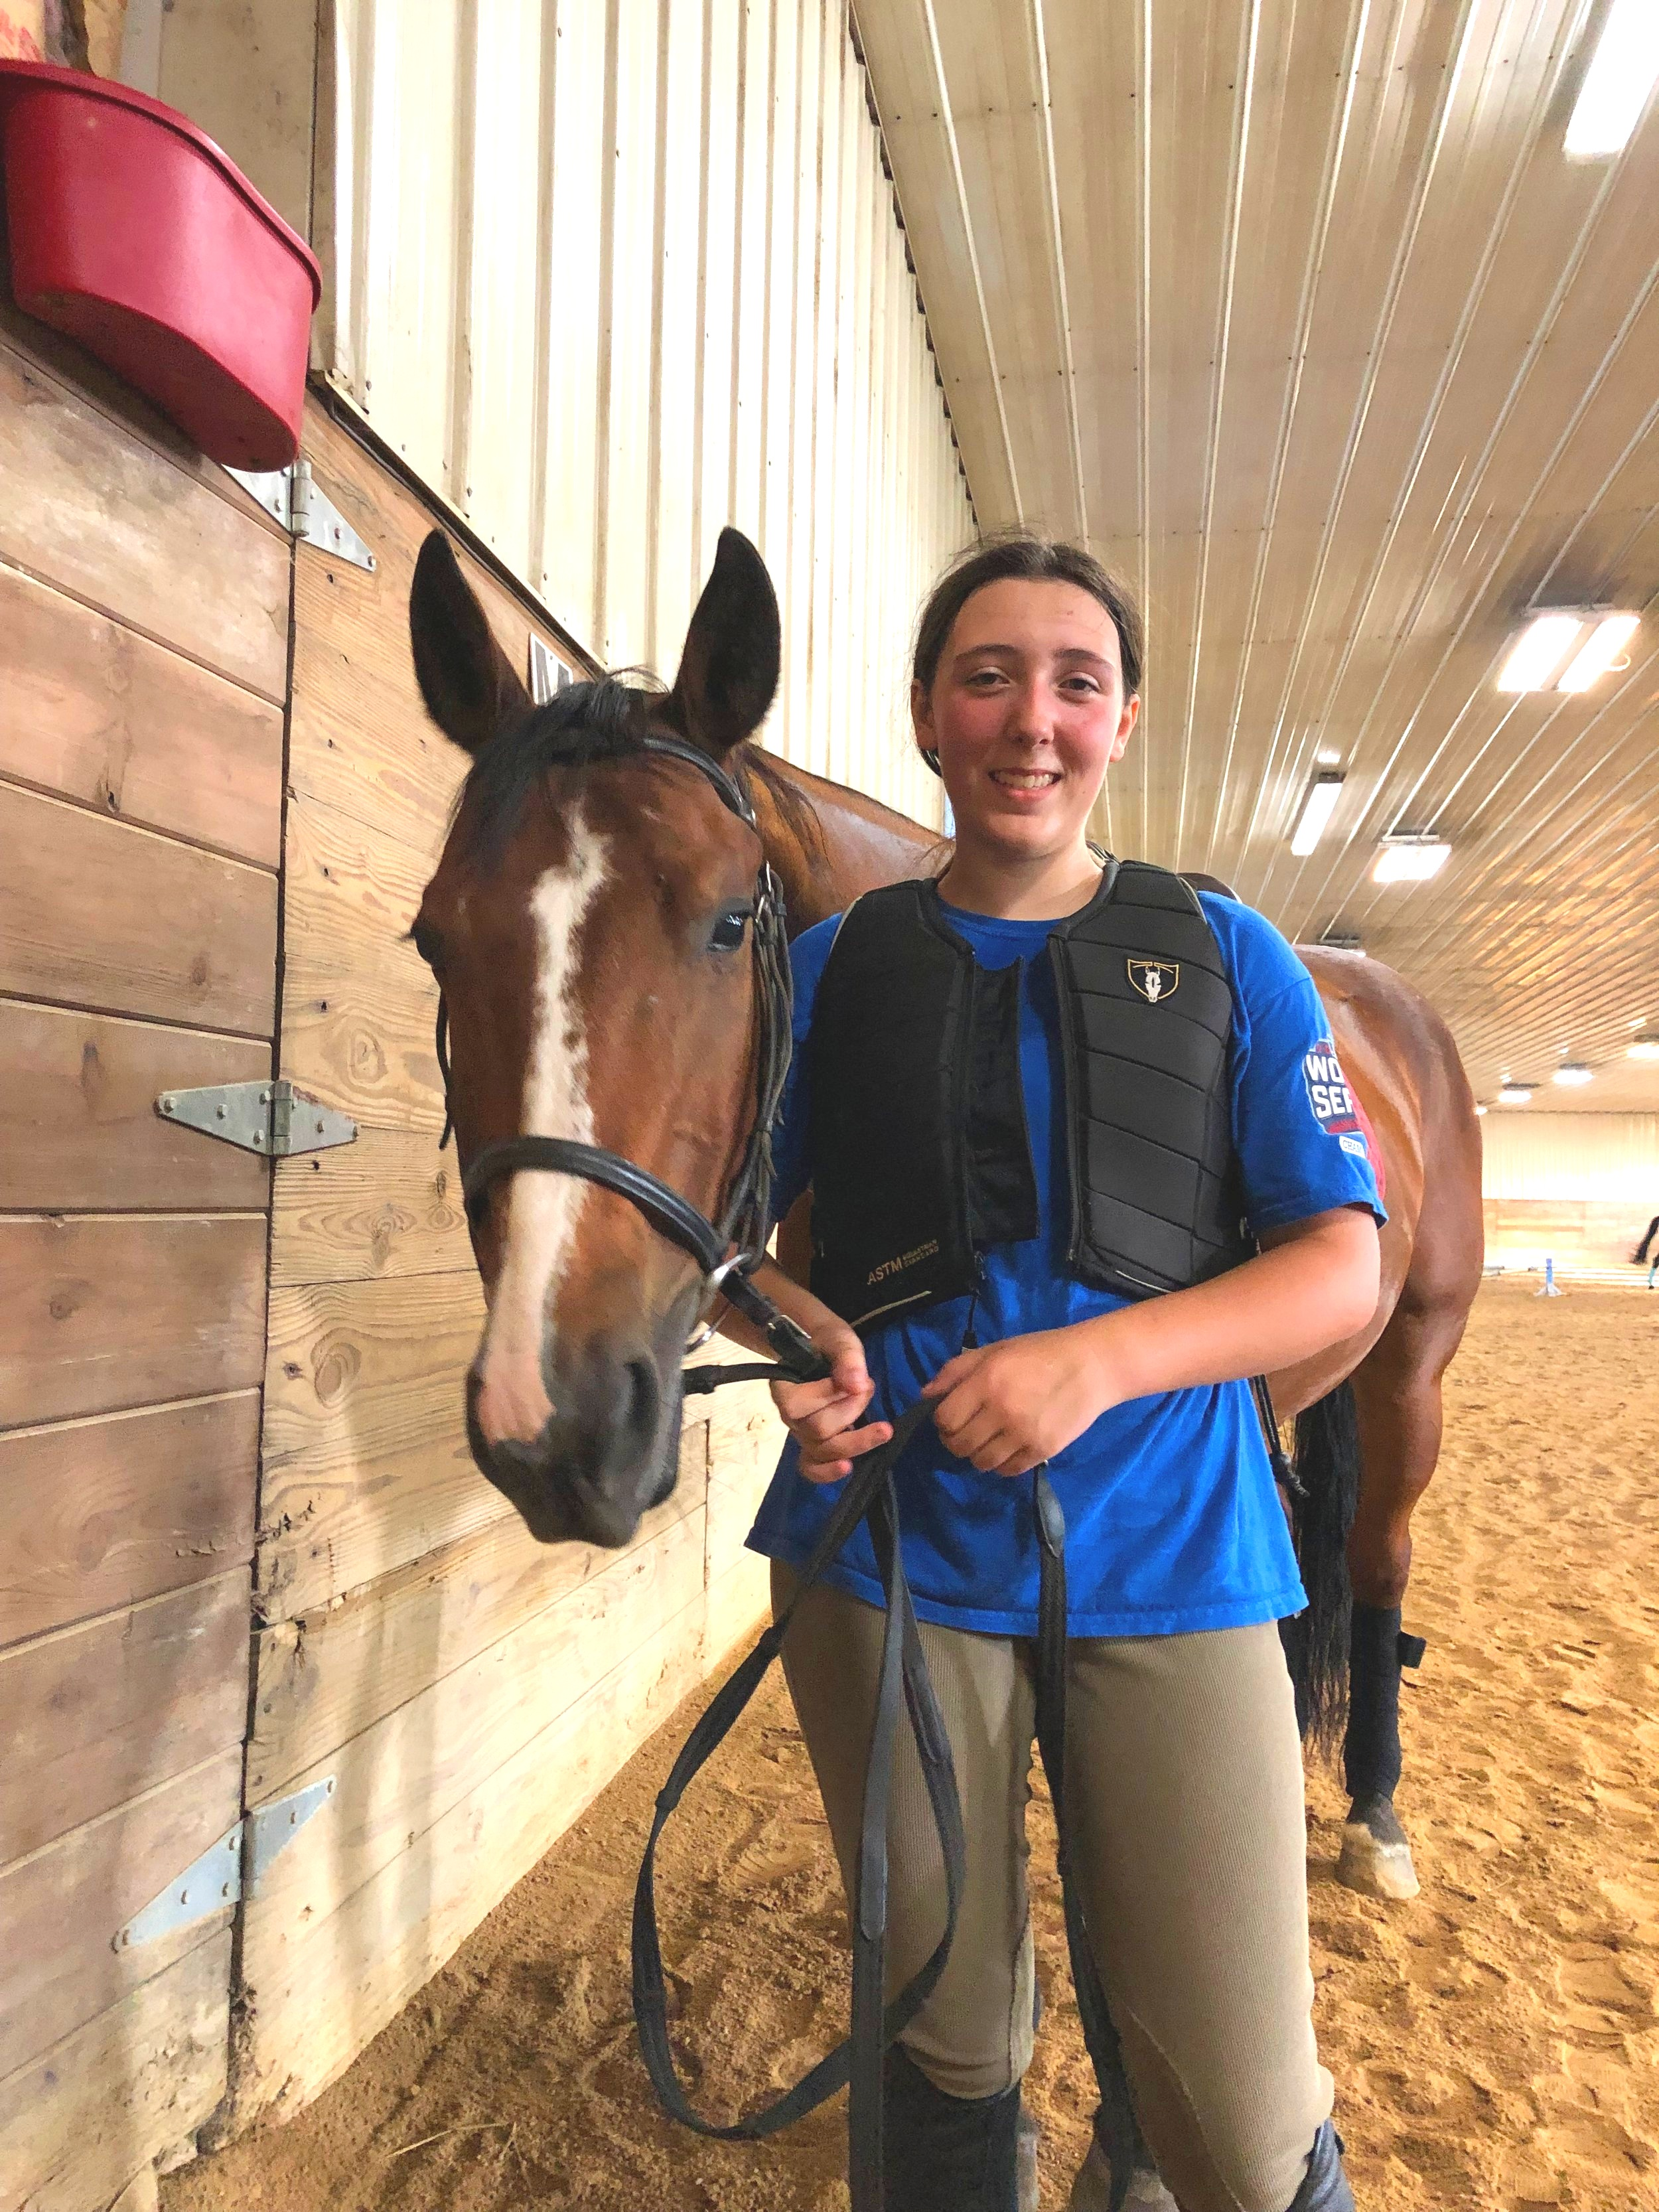 Hi! My name is Amanda and I am 15 years old. My favorite horse is Tucker and I also have a lot of love for Shilo and Freckles. I have been riding at Heavenly Horses for 10 years. I love to jump and do speed. I also love to see new riders come and learn new things and improve with every lesson.